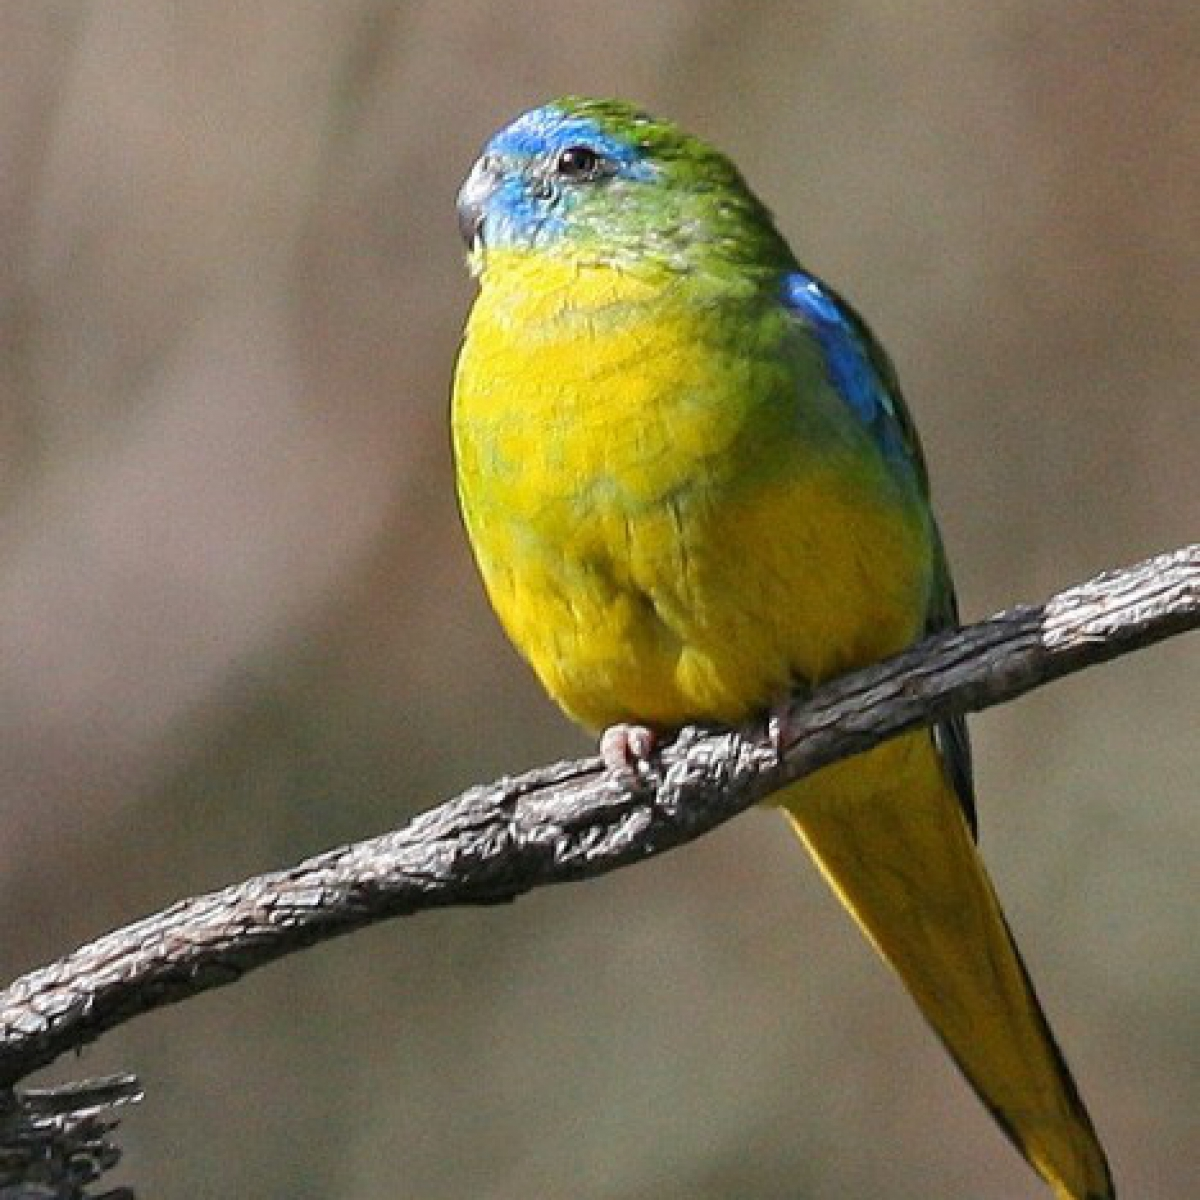 836 Turquoise Parrot